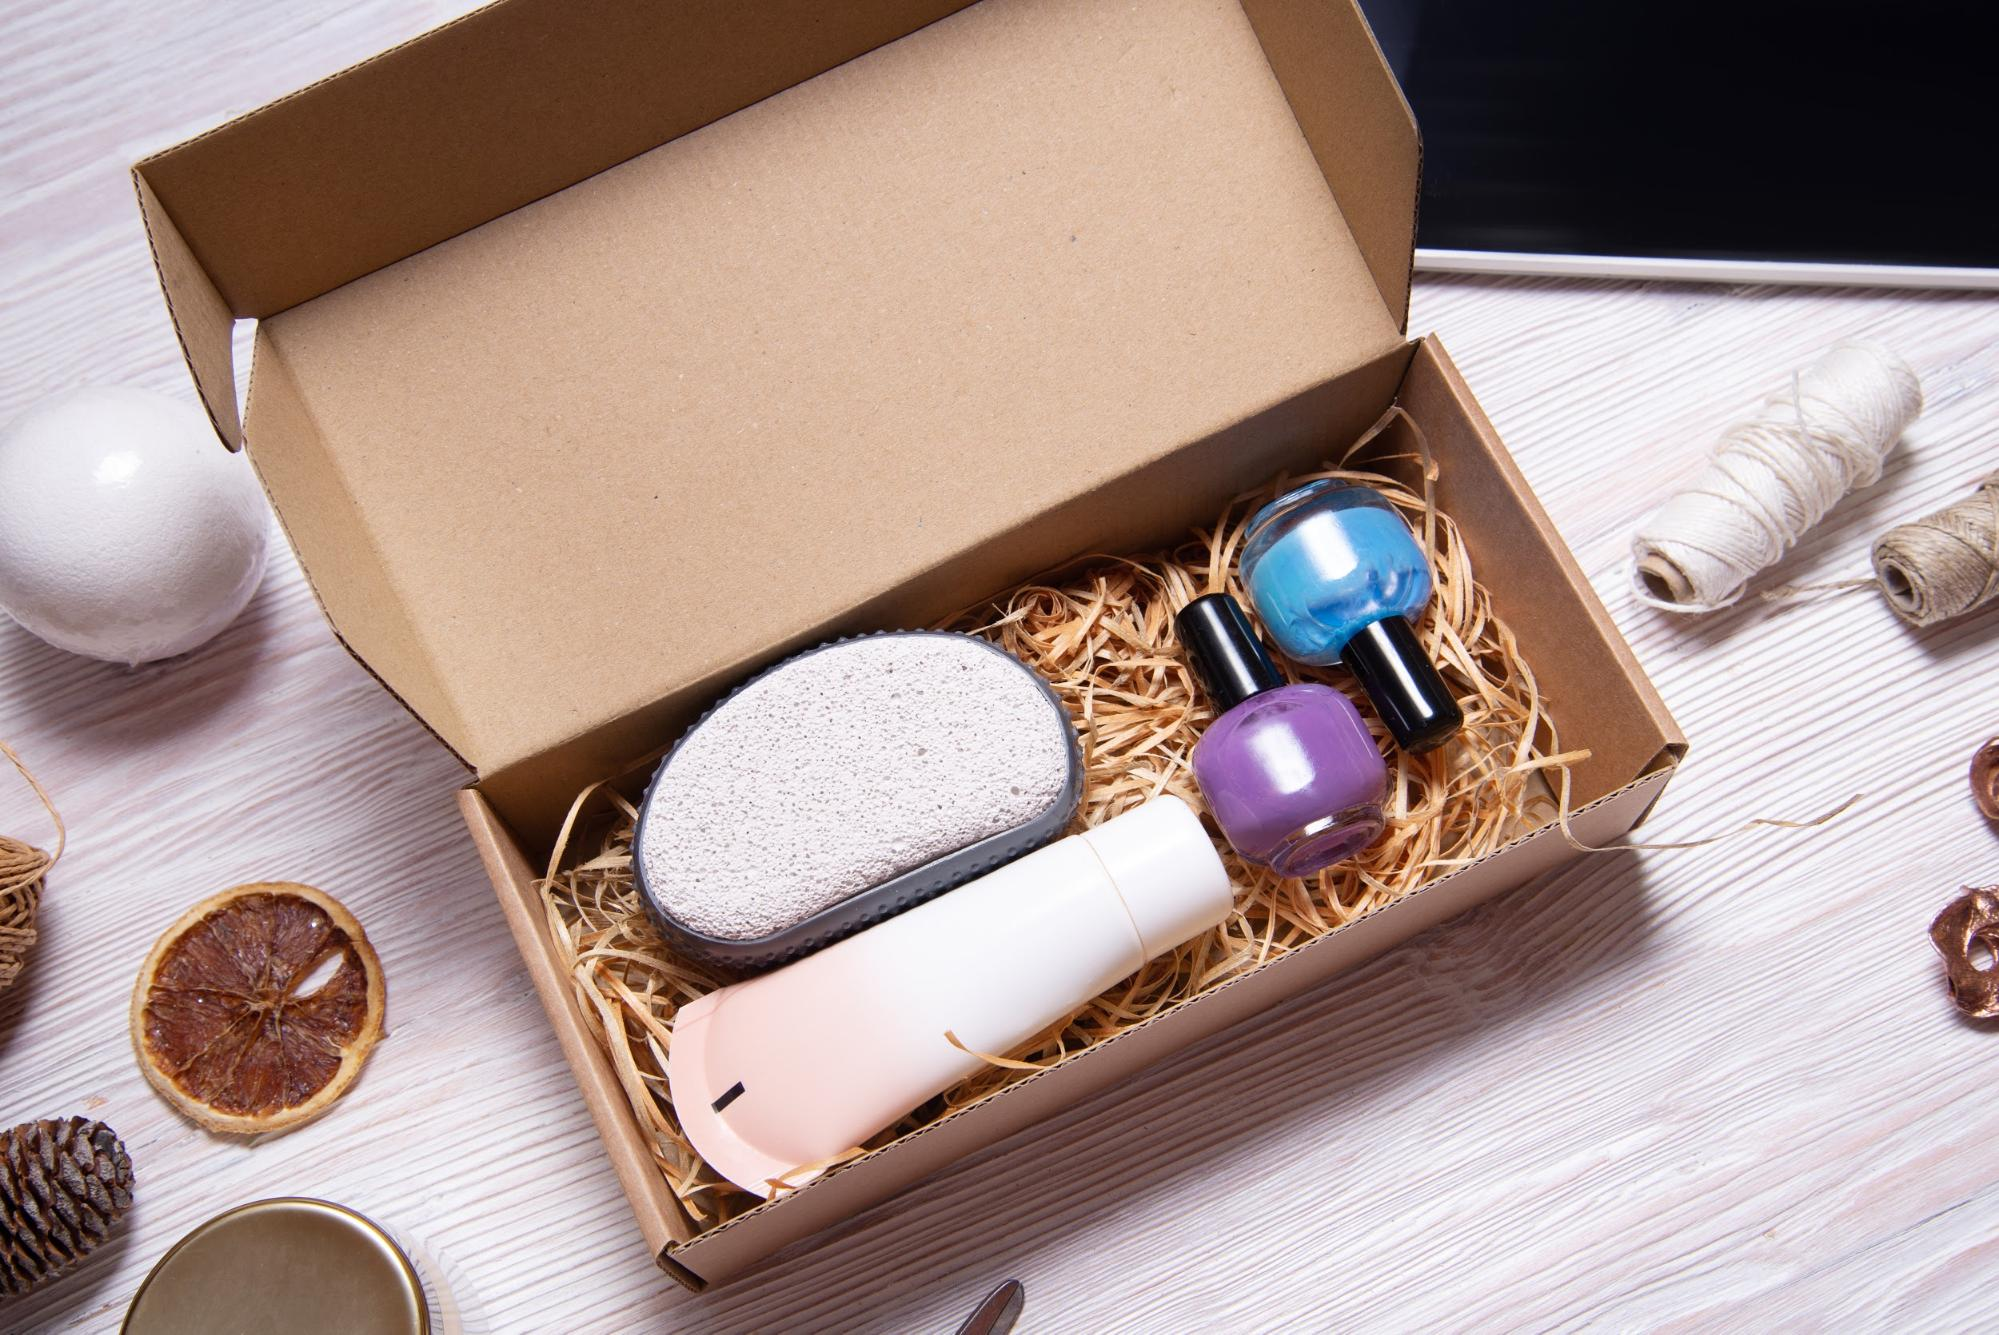 Presentation and packaging matters when selling subscription boxes.